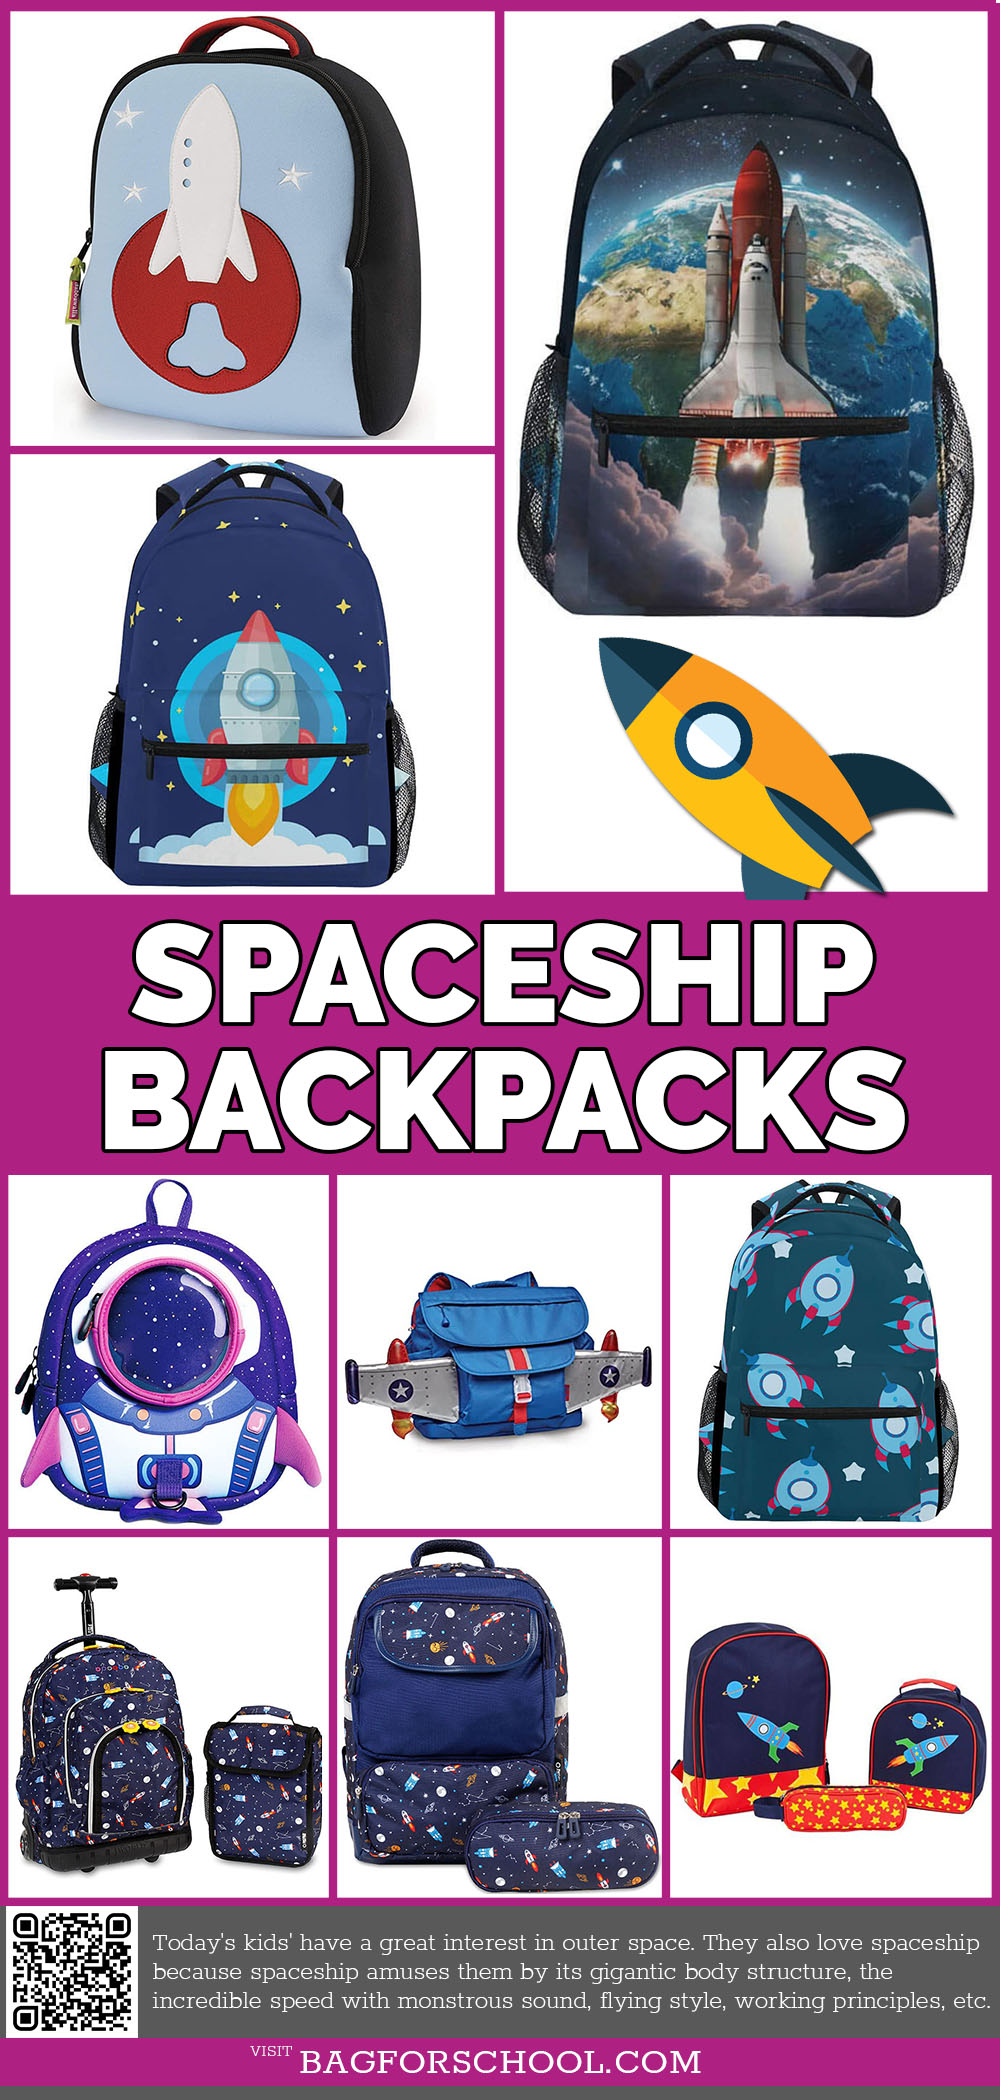 Spaceship Backpacks